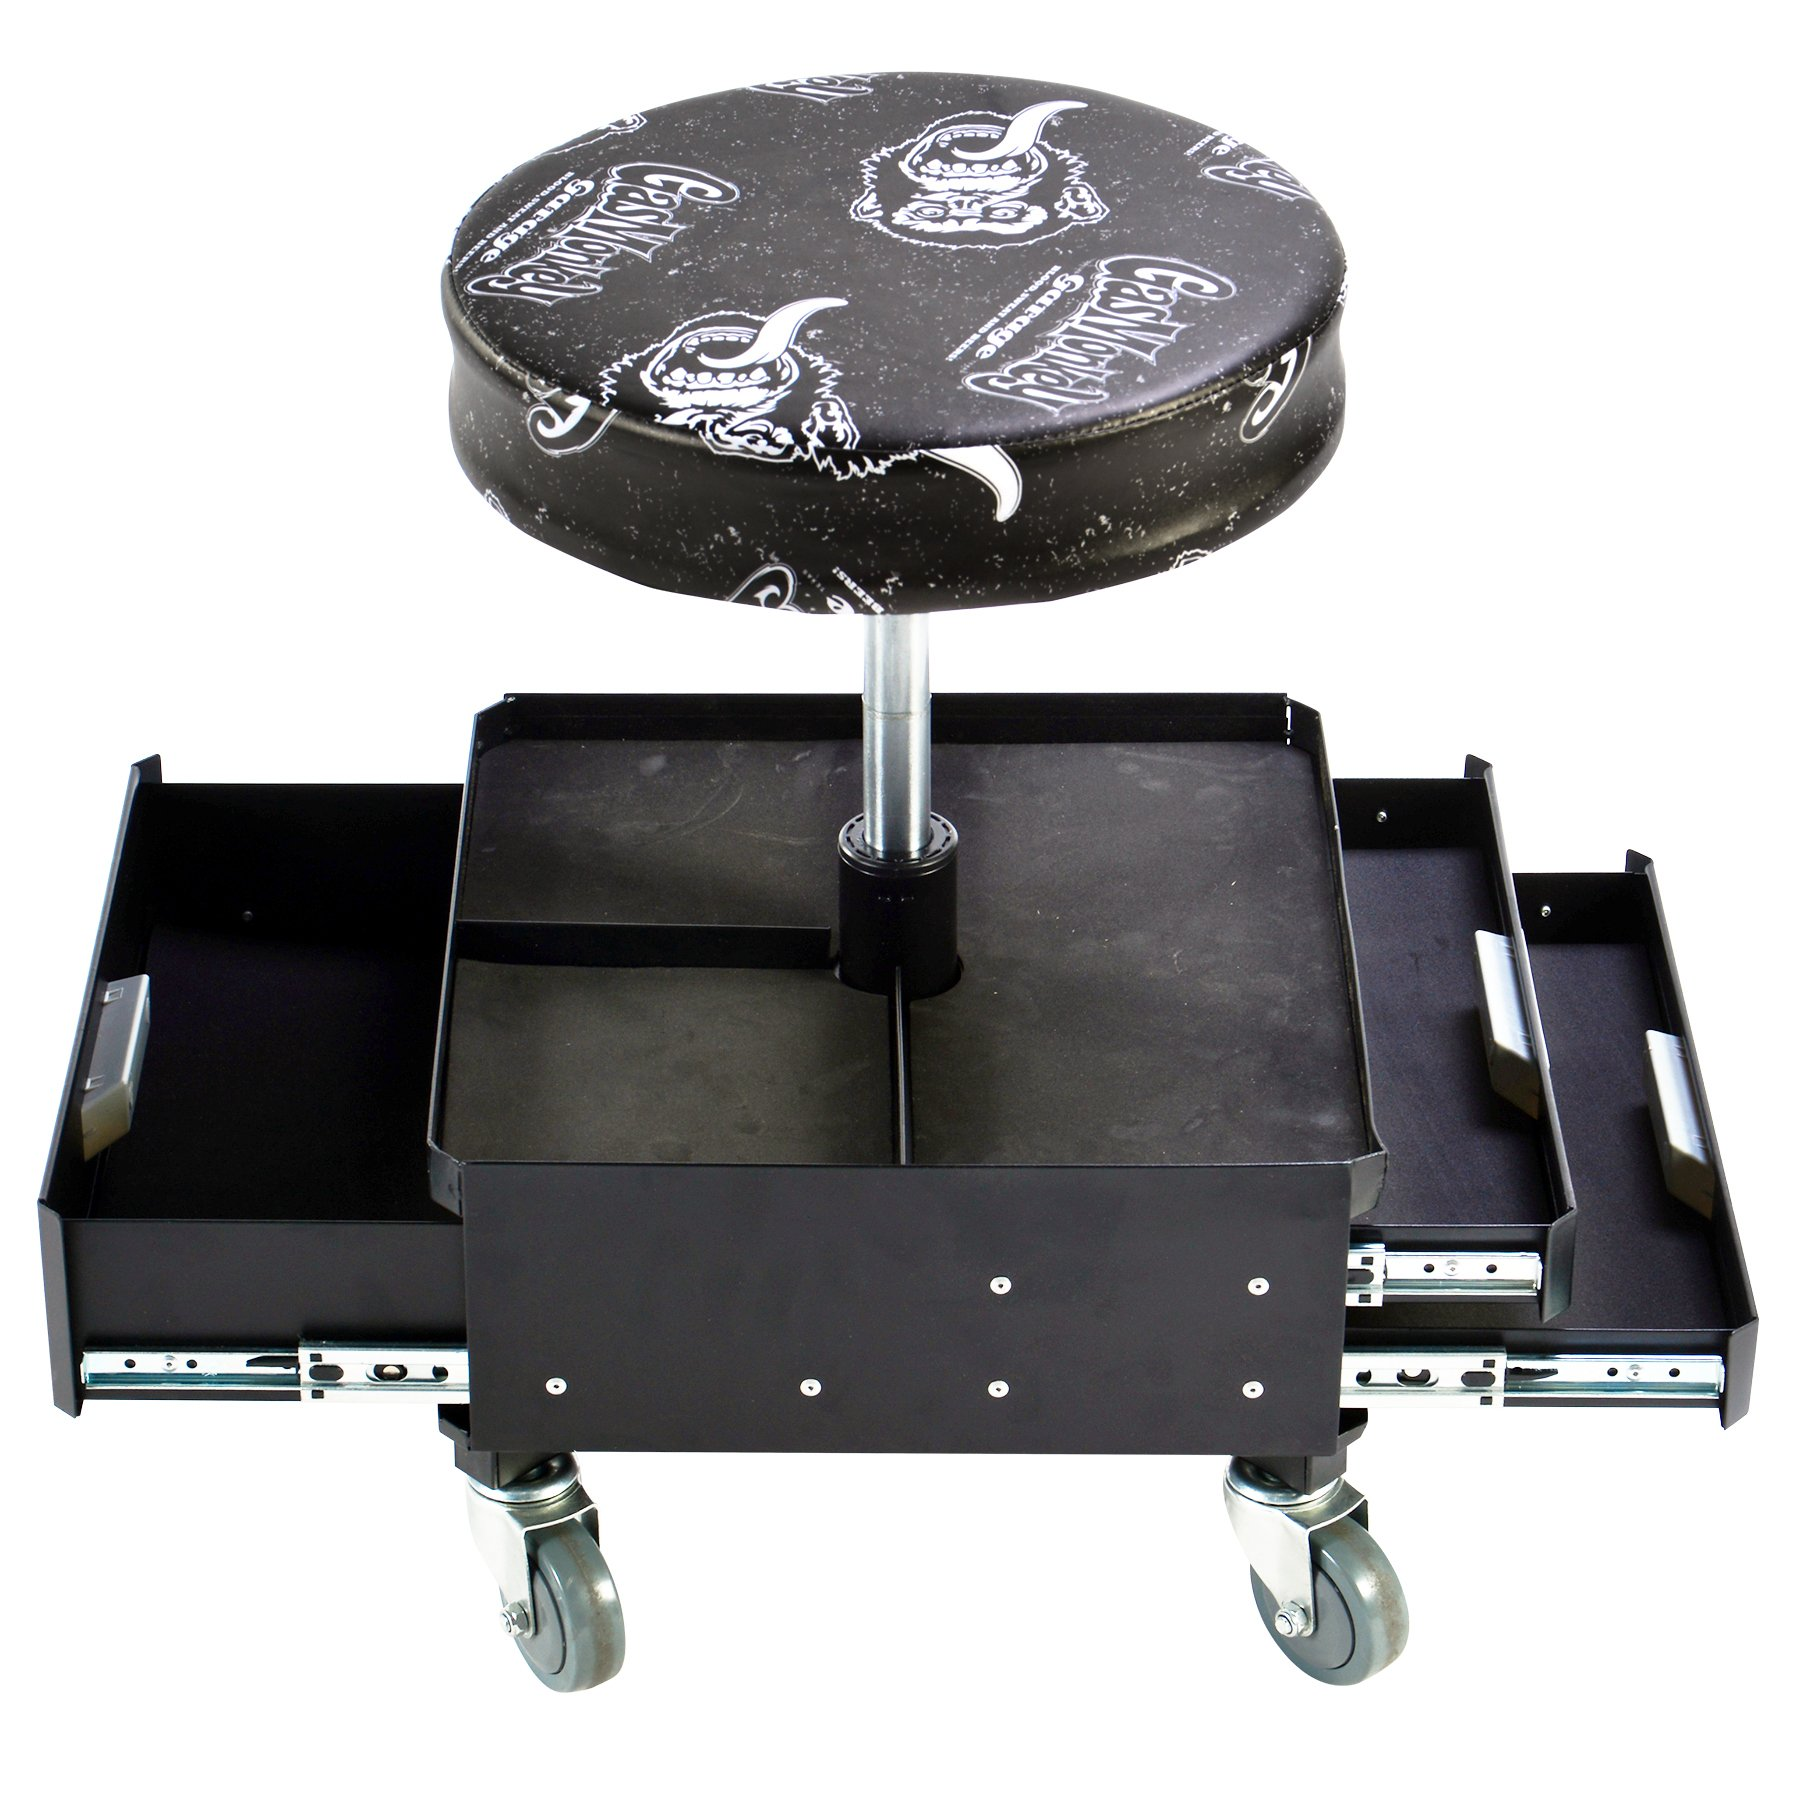 Gas Monkey Pneumatic Garage Seat with Toolbox - 3-Drawers and Convenient Tool Tray - 4 Rolling Casters with 300 Lbs Capacity